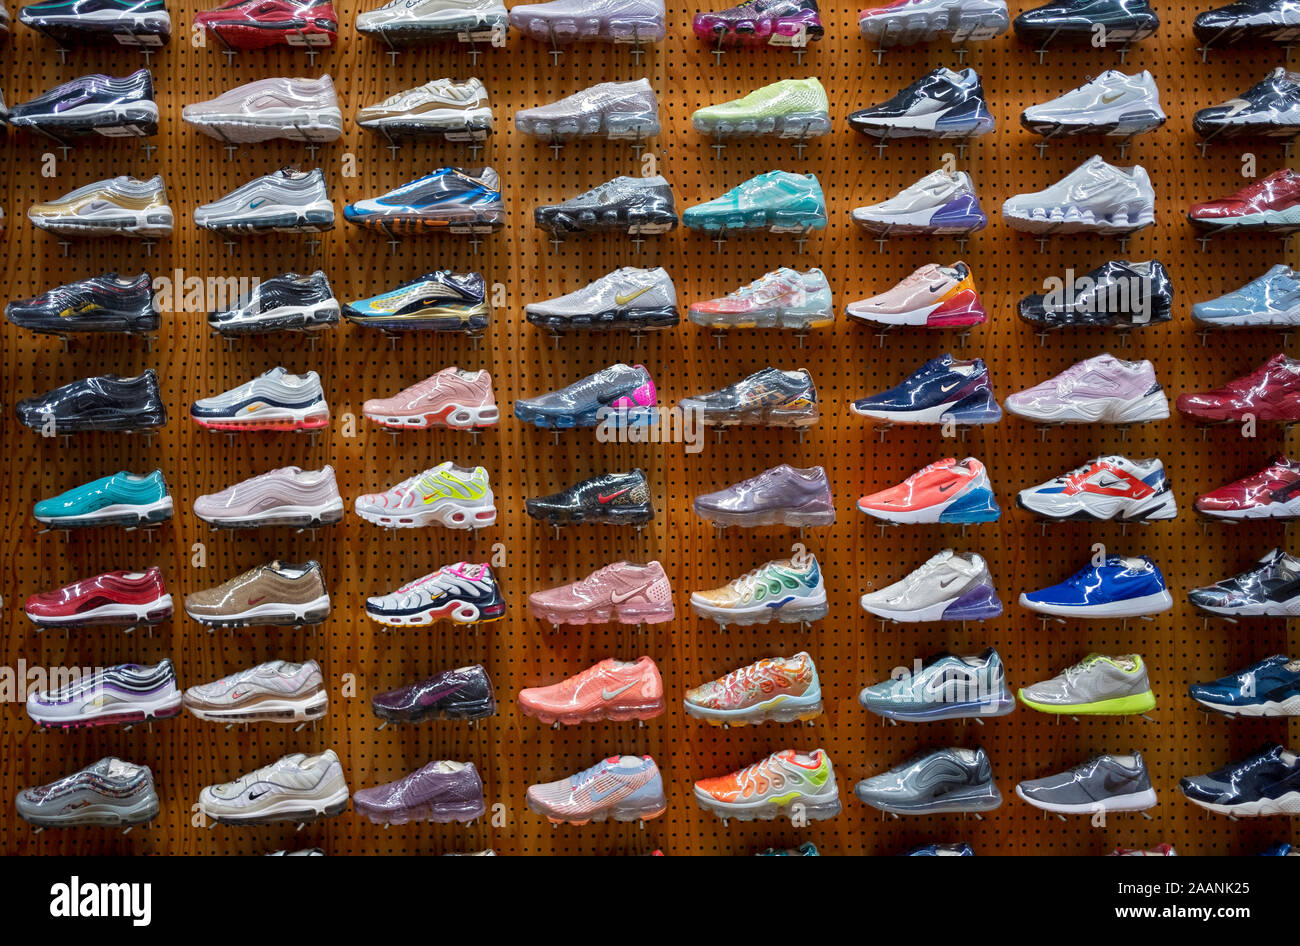 Nike Running Shoes Immagini e Fotos Stock Alamy